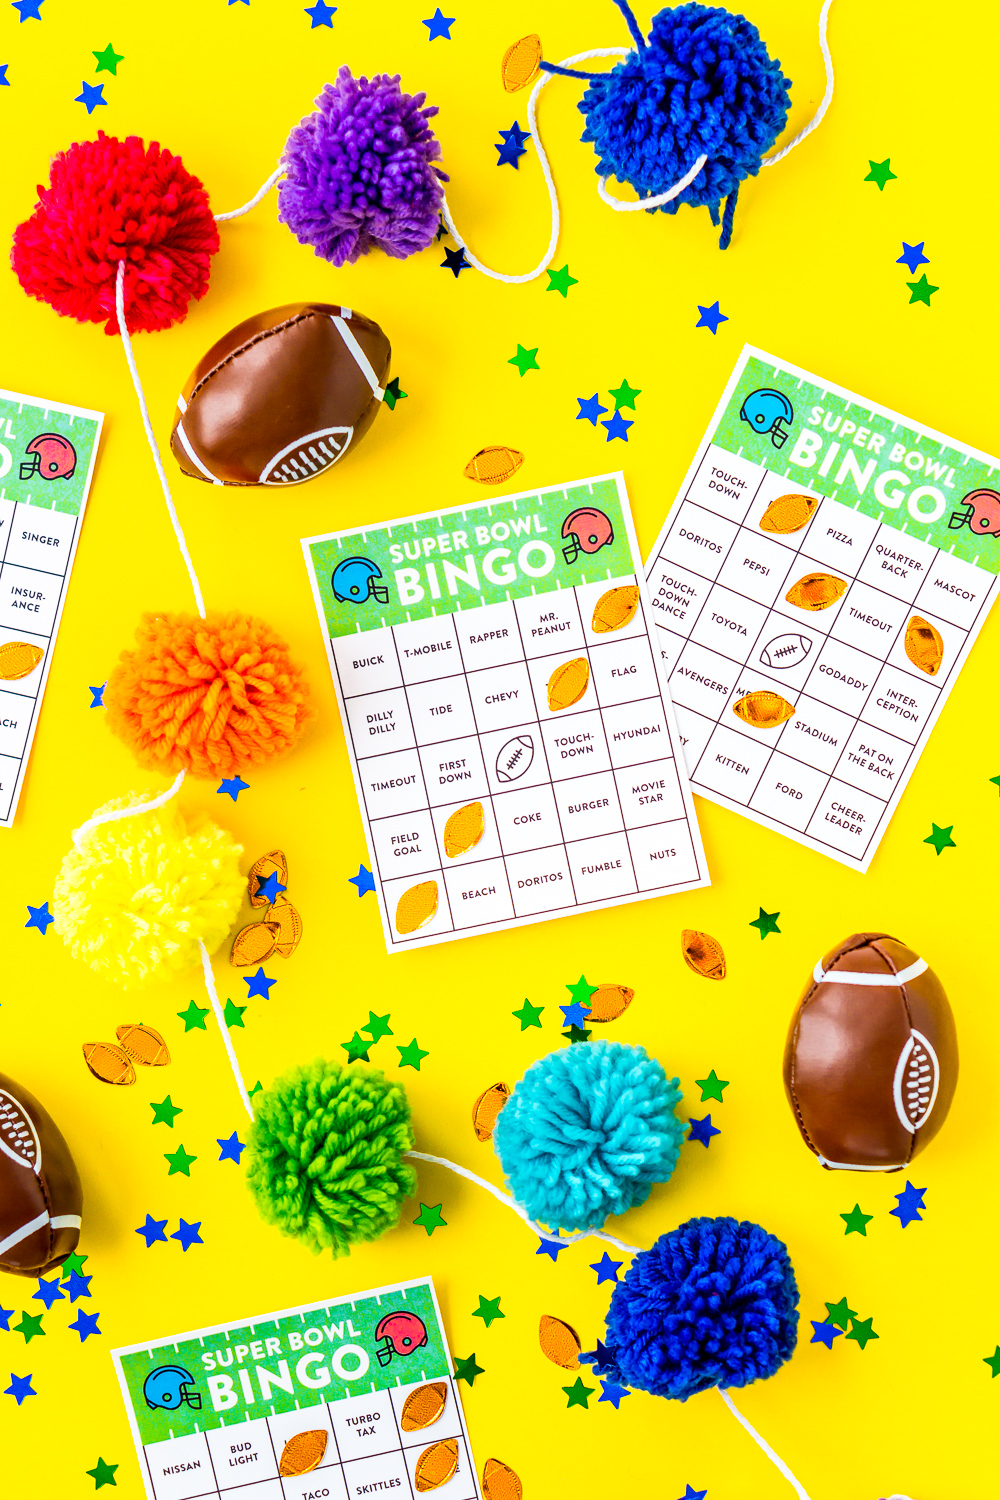 Super Bowl Bingo Cards on yellow background with pom poms, mini footballs, and confetti.